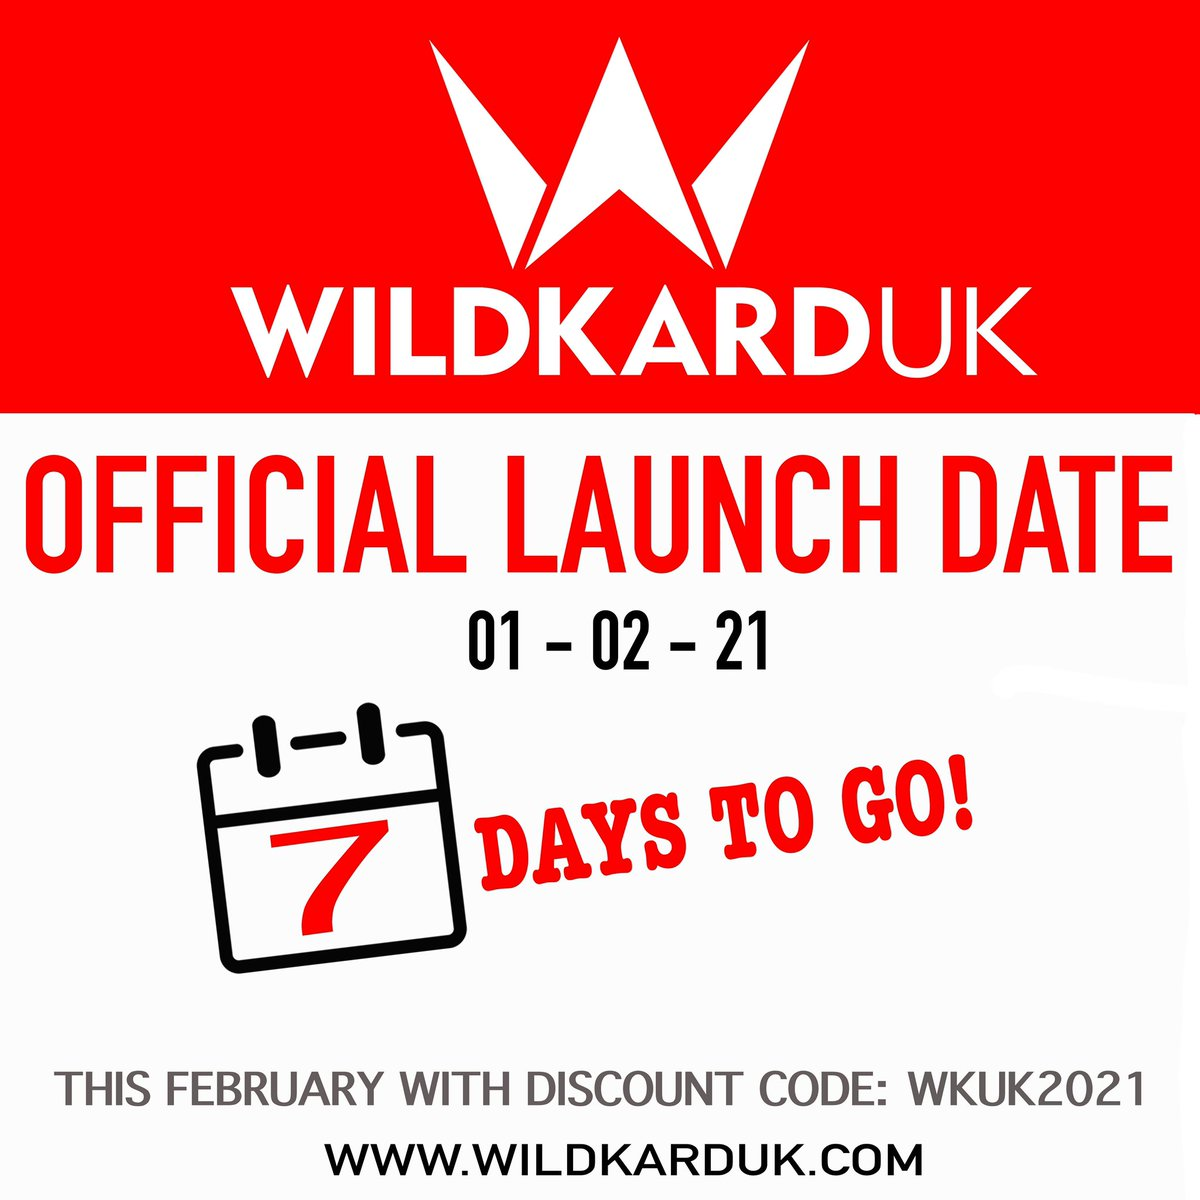 ITS OFFICIAL - FEB 1ST 2021!!! To celebrate our launch date we are offering 10% 💰 off all products for the entire month of February ❤️❤️❤️ just use our code: WKUK2021 💥 #wildkarduk #wkuk2021 #wkuk #2021 #hockey #power #clothing #apparel #uk #nevergiveup #raisingthegame